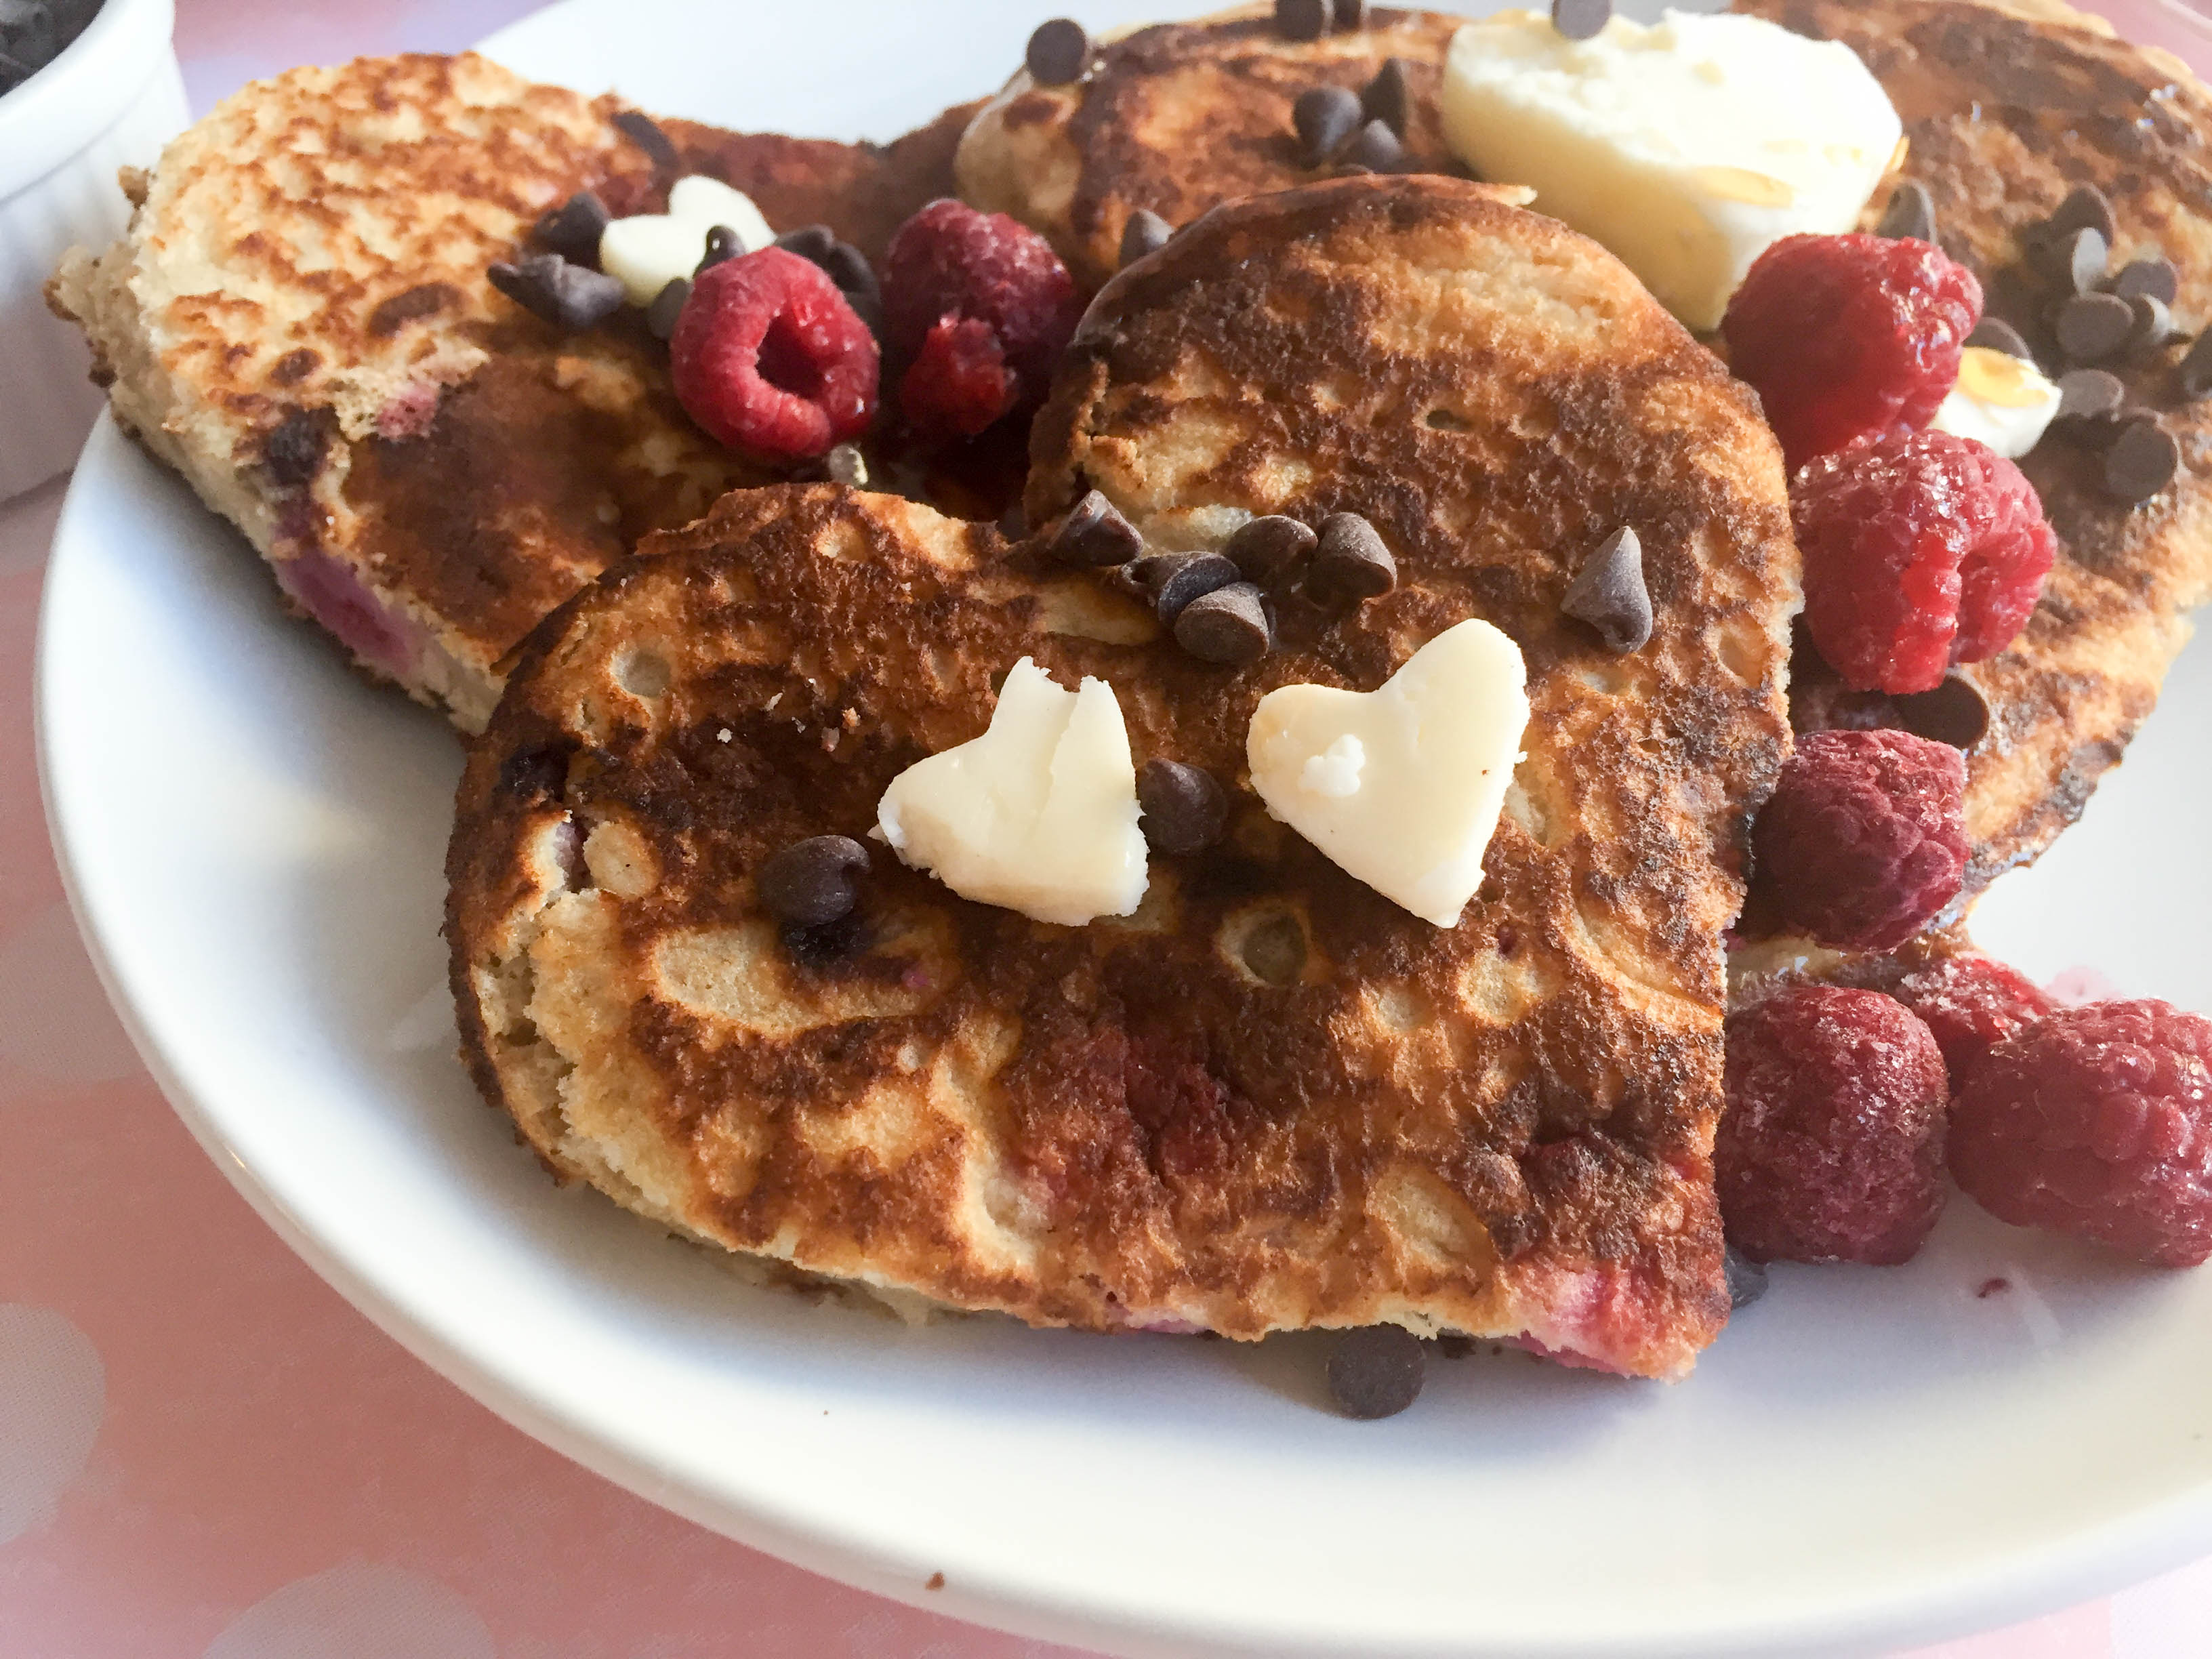 Raspberry Chocolate Chip Pancakes